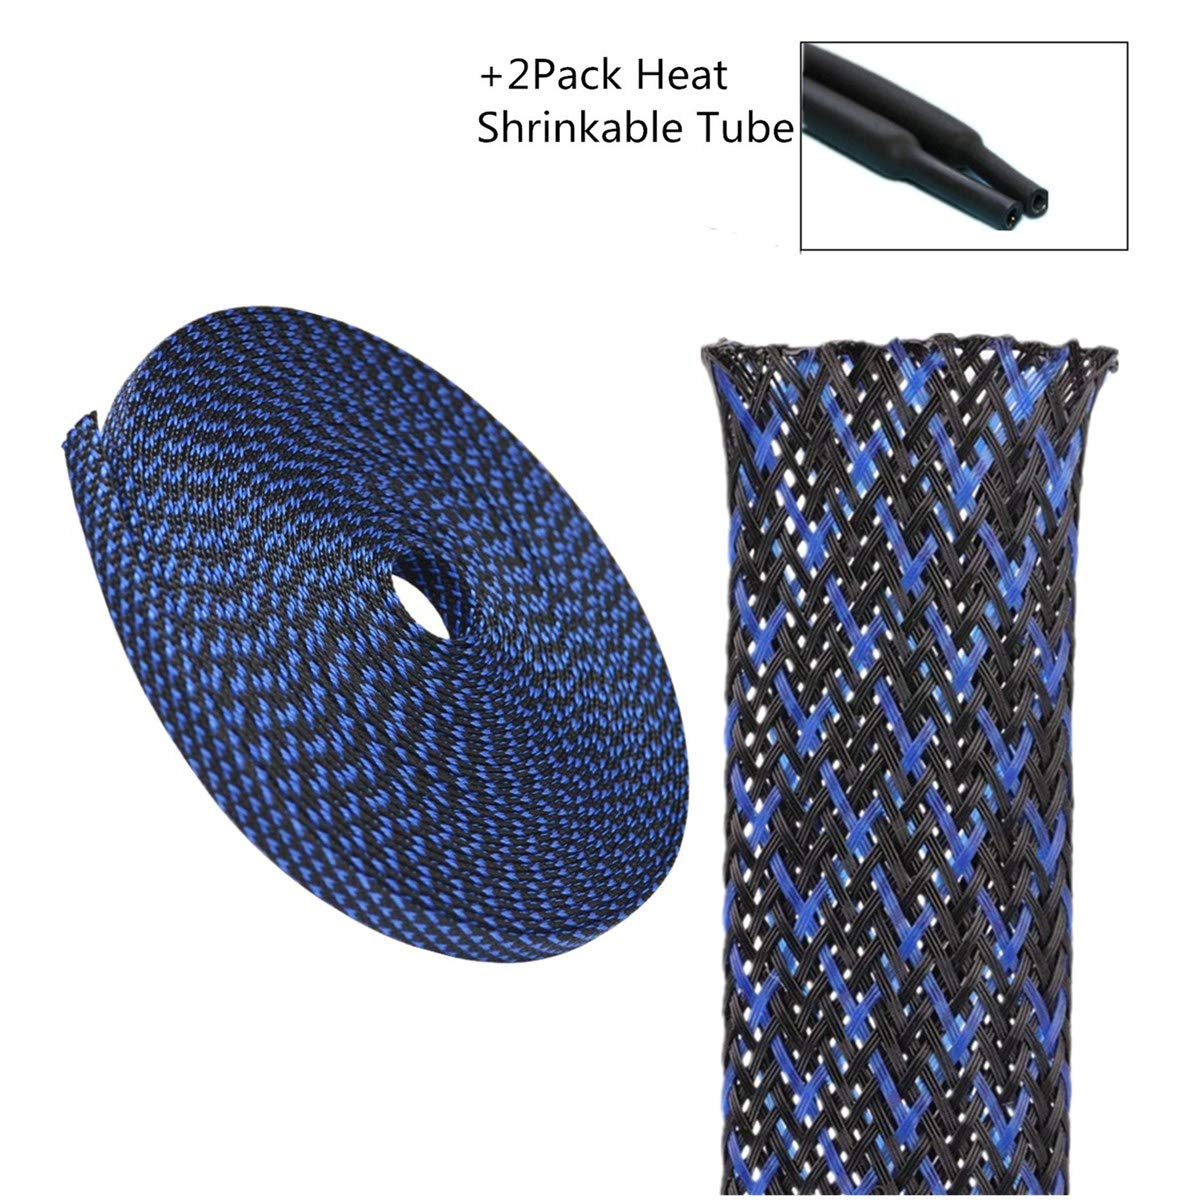 PET Expandable Braided Sleeving 1//4 Flexo Cable Sleeve Black Braided Sleeve for Braided Wire Sleeve Management Cord Protector 25 FT Blue/&Black Cable Sleeving